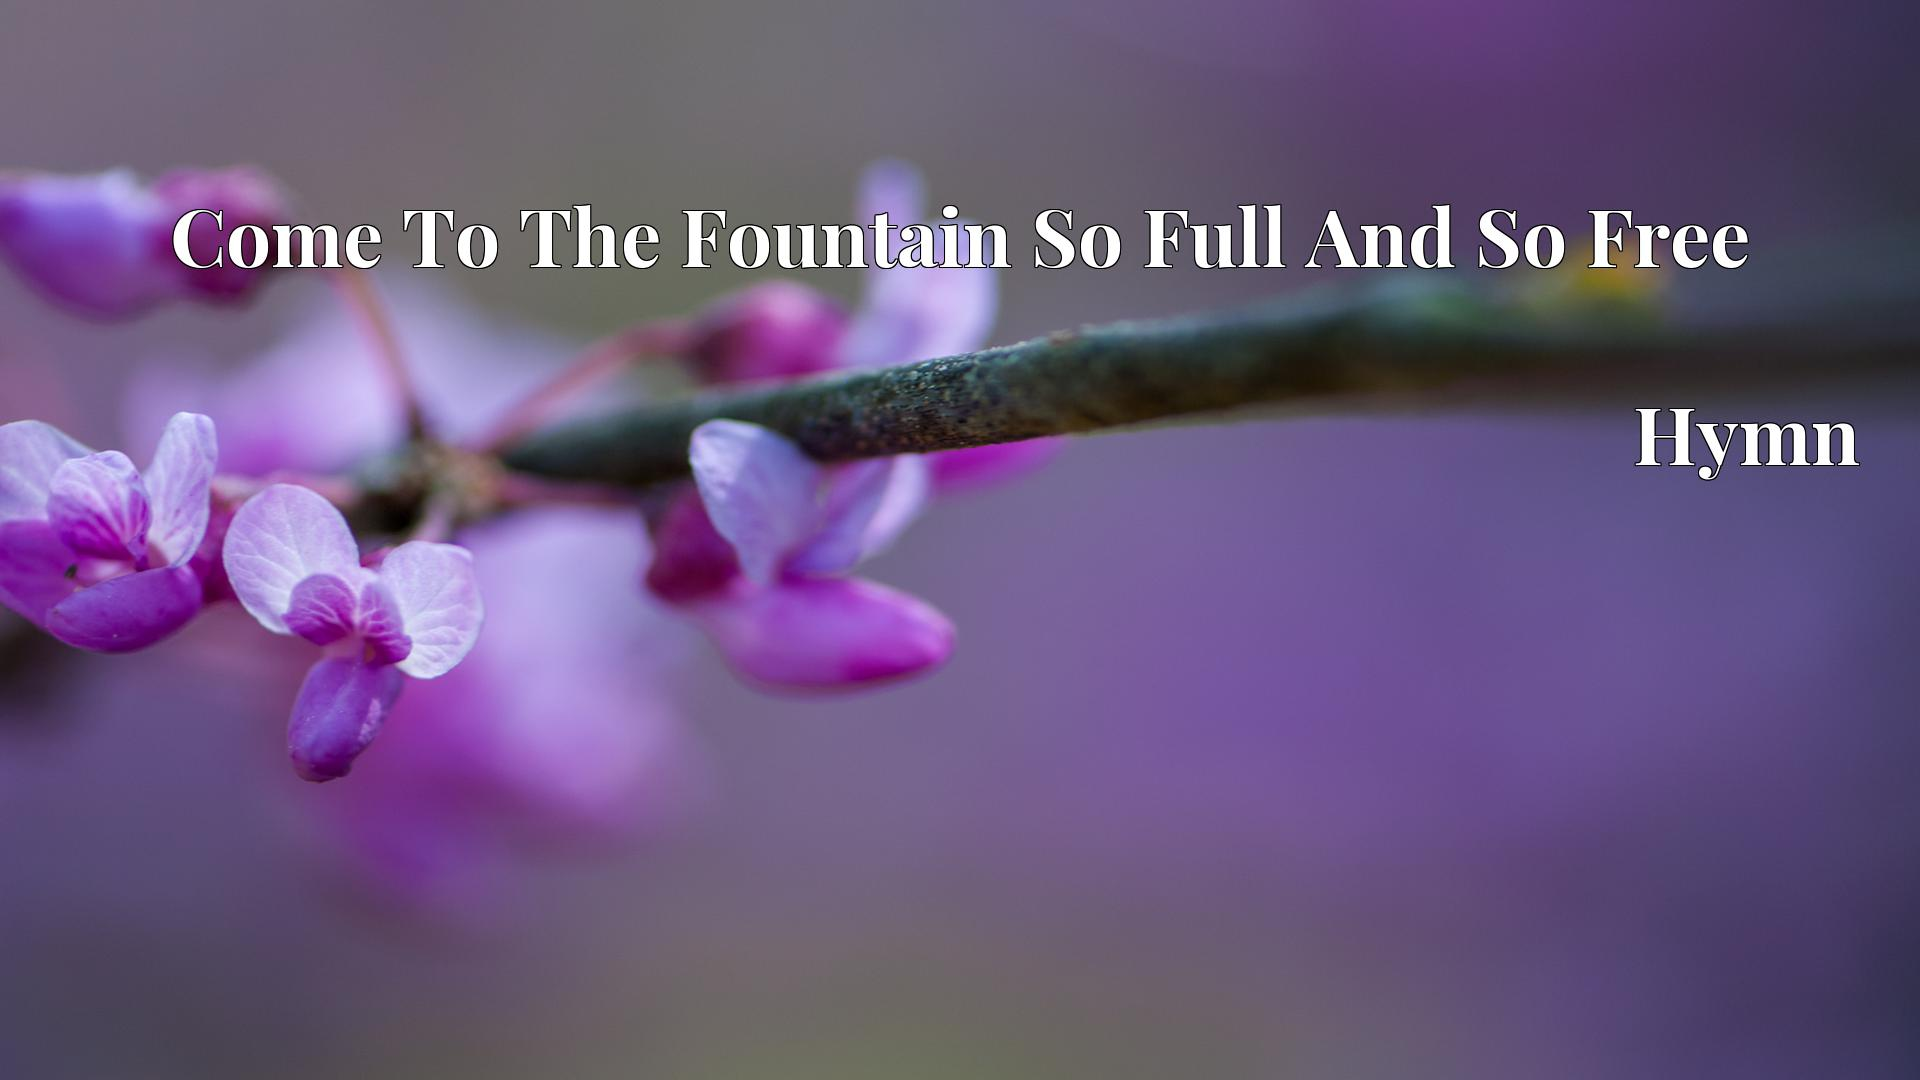 Come To The Fountain So Full And So Free Hymn Lyric